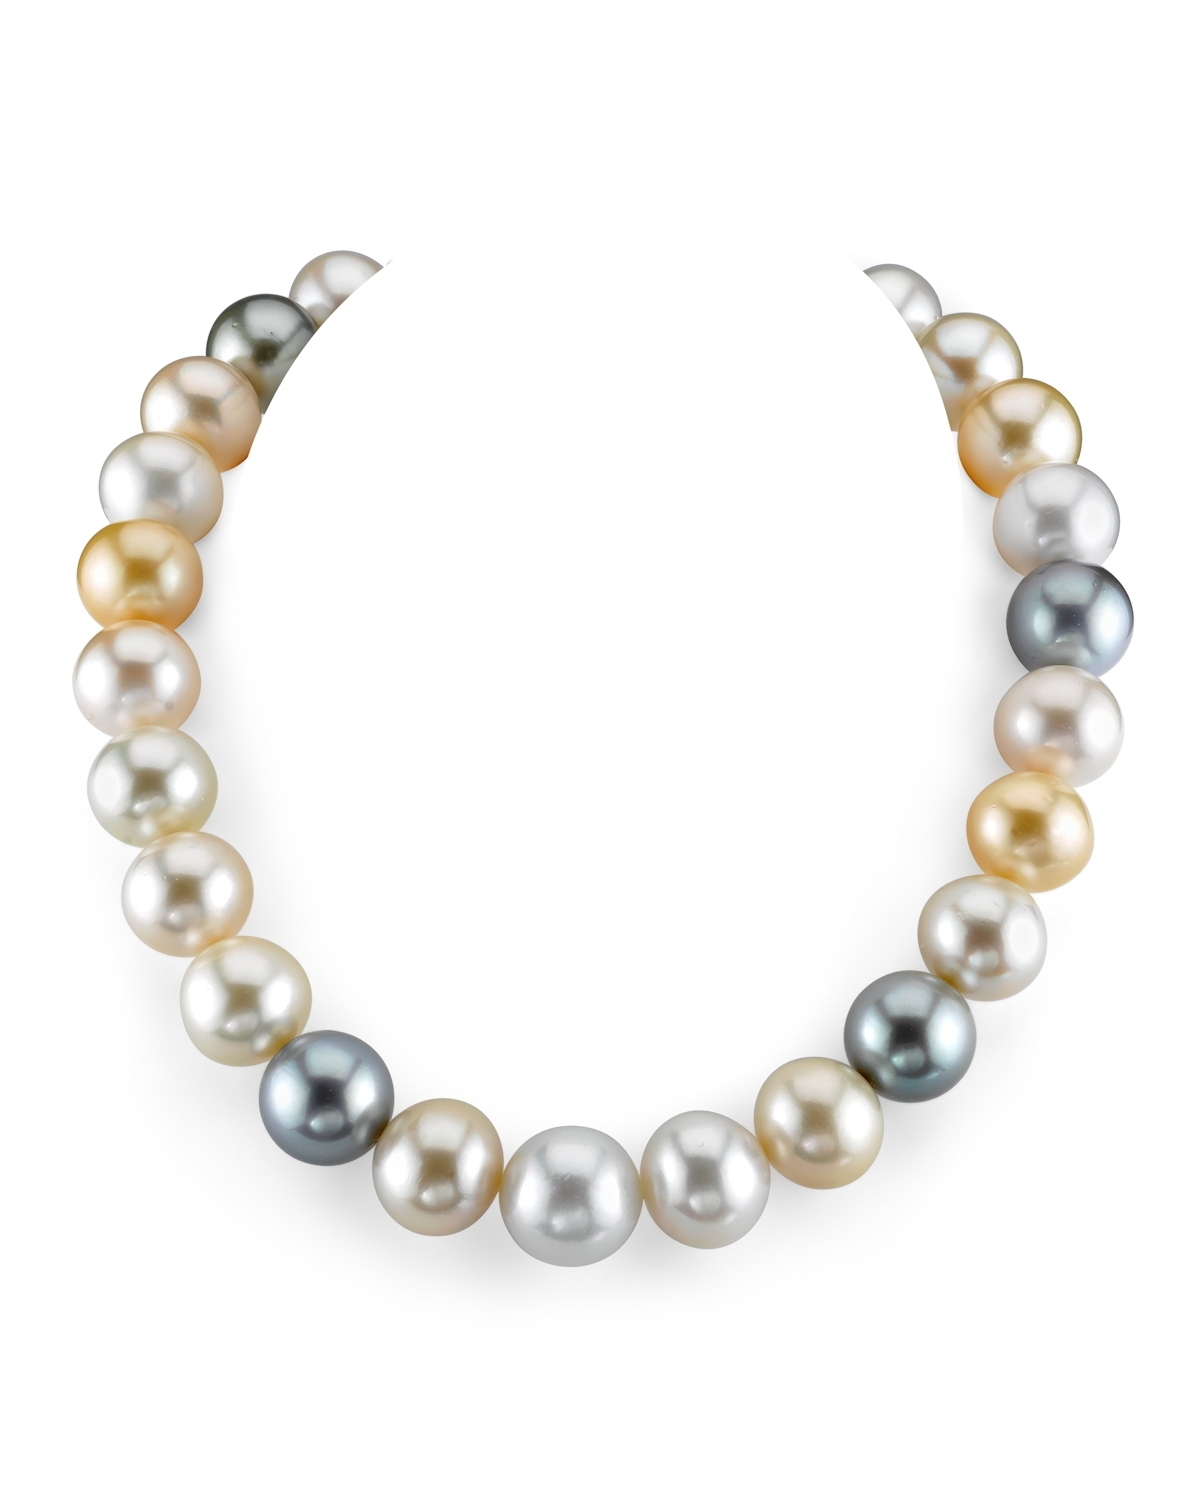 300e460a40643 15-16.7mm South Sea Multicolor Pearl Necklace - AAA Quality